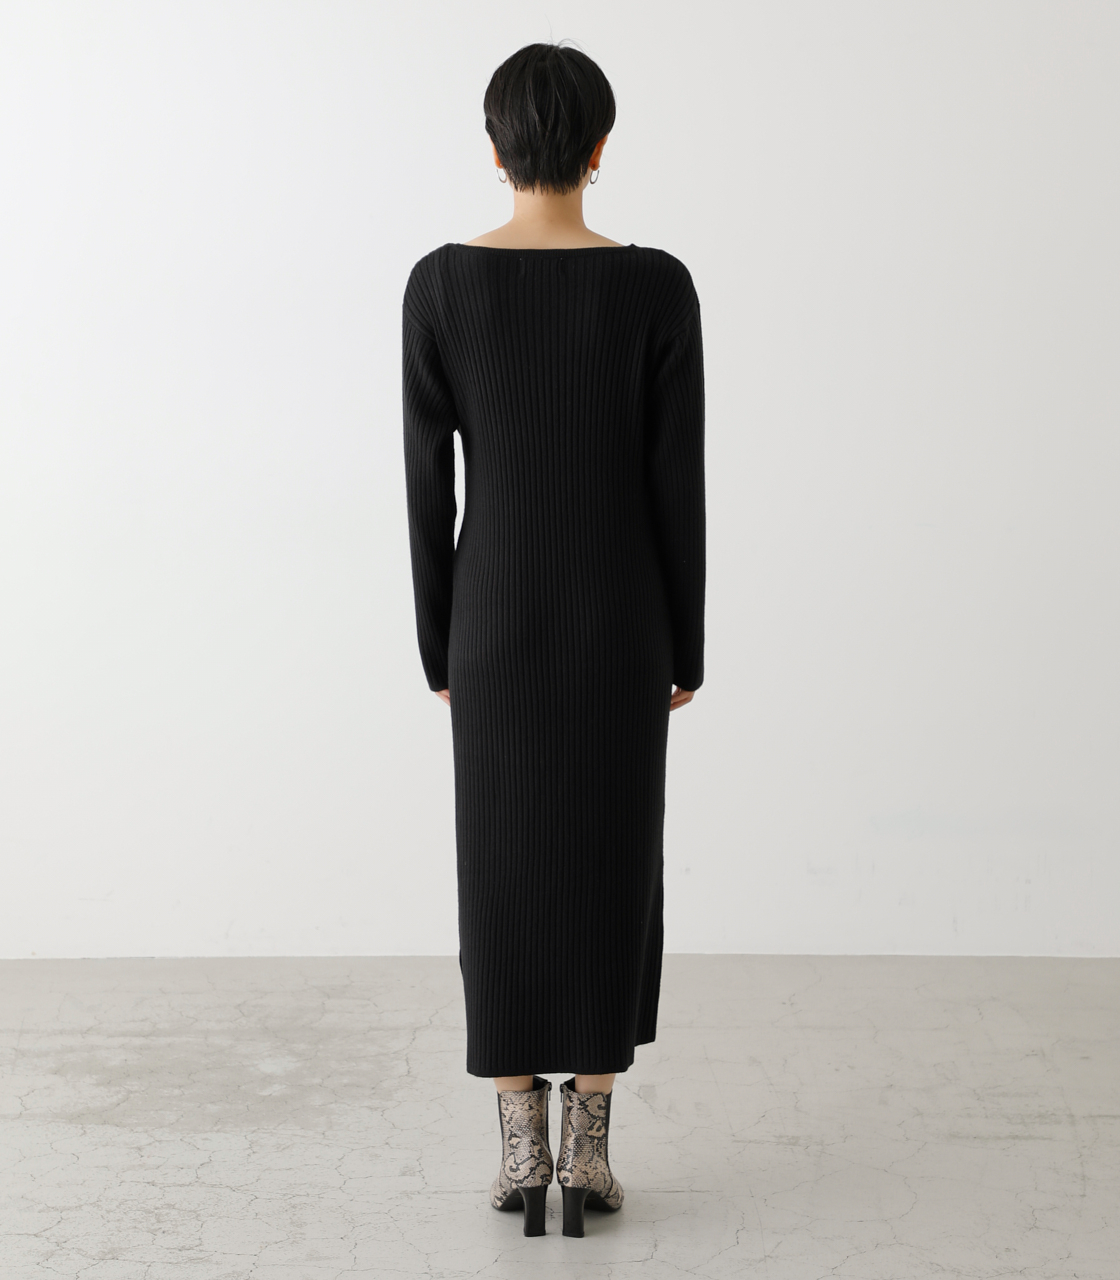 FRONT LINK ASYMMETRY KNIT OP/フロントリンクアシンメトリーニットワンピース【MOOK53掲載 90004】 詳細画像 BLK 7